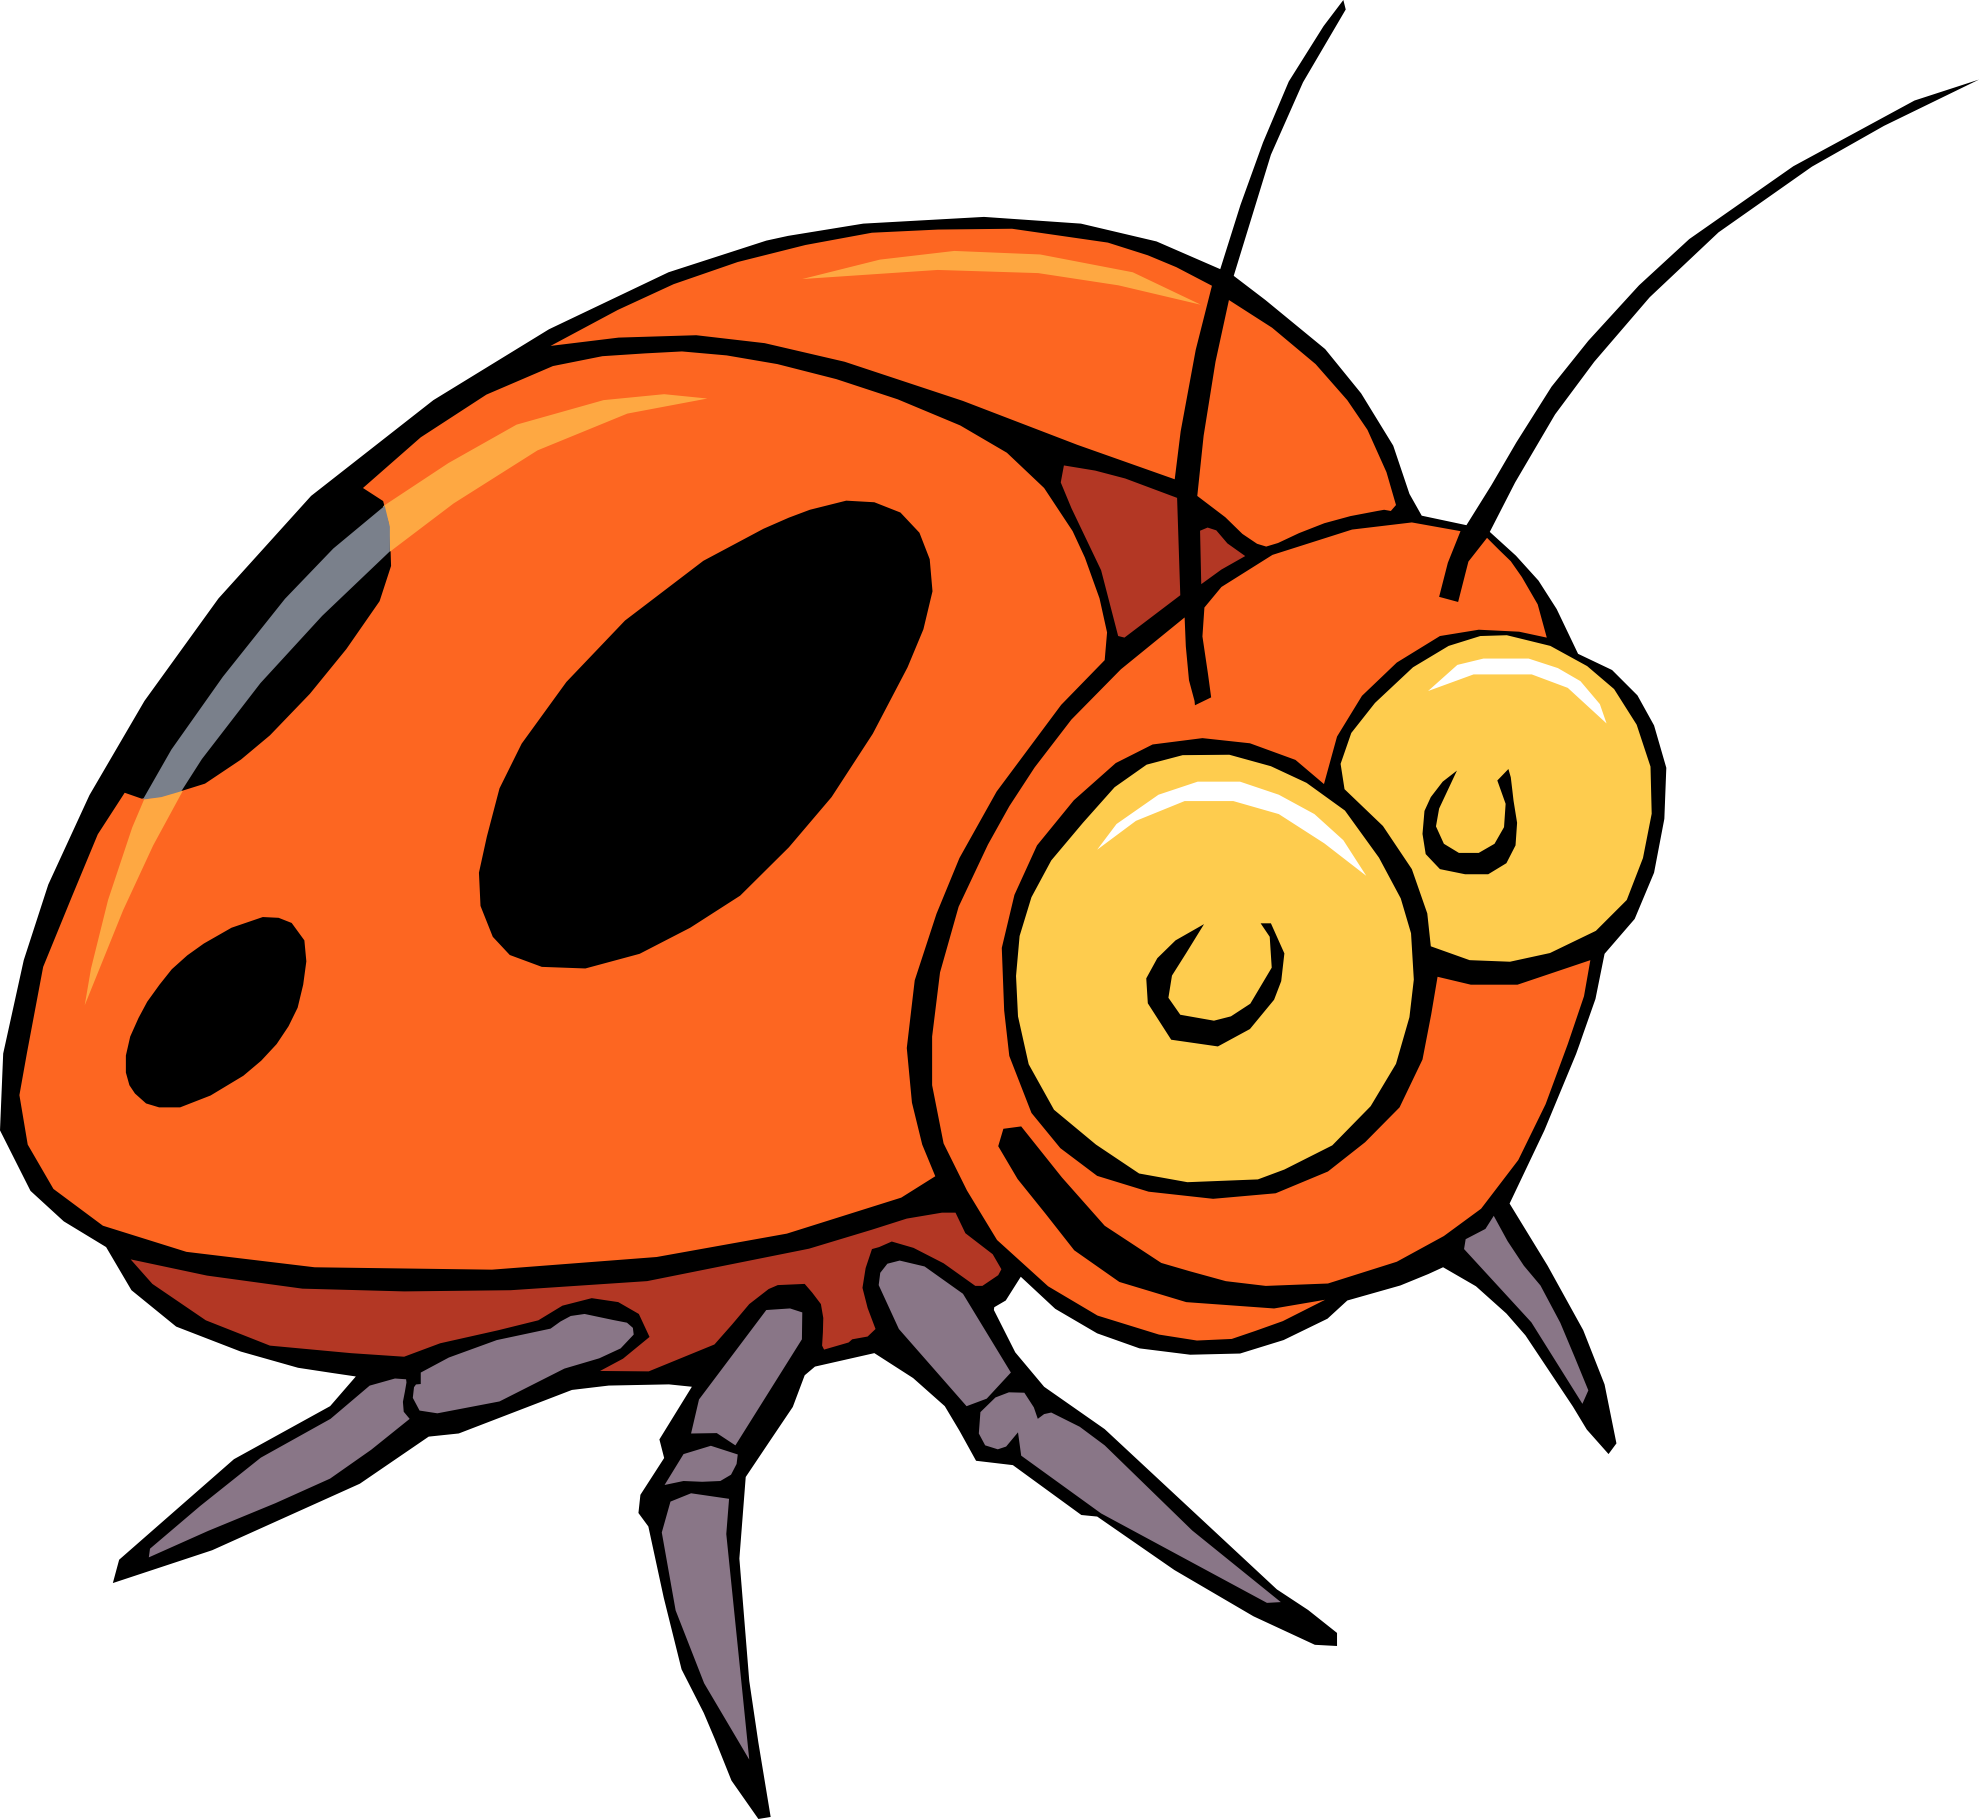 Bug insect clip art free clipart